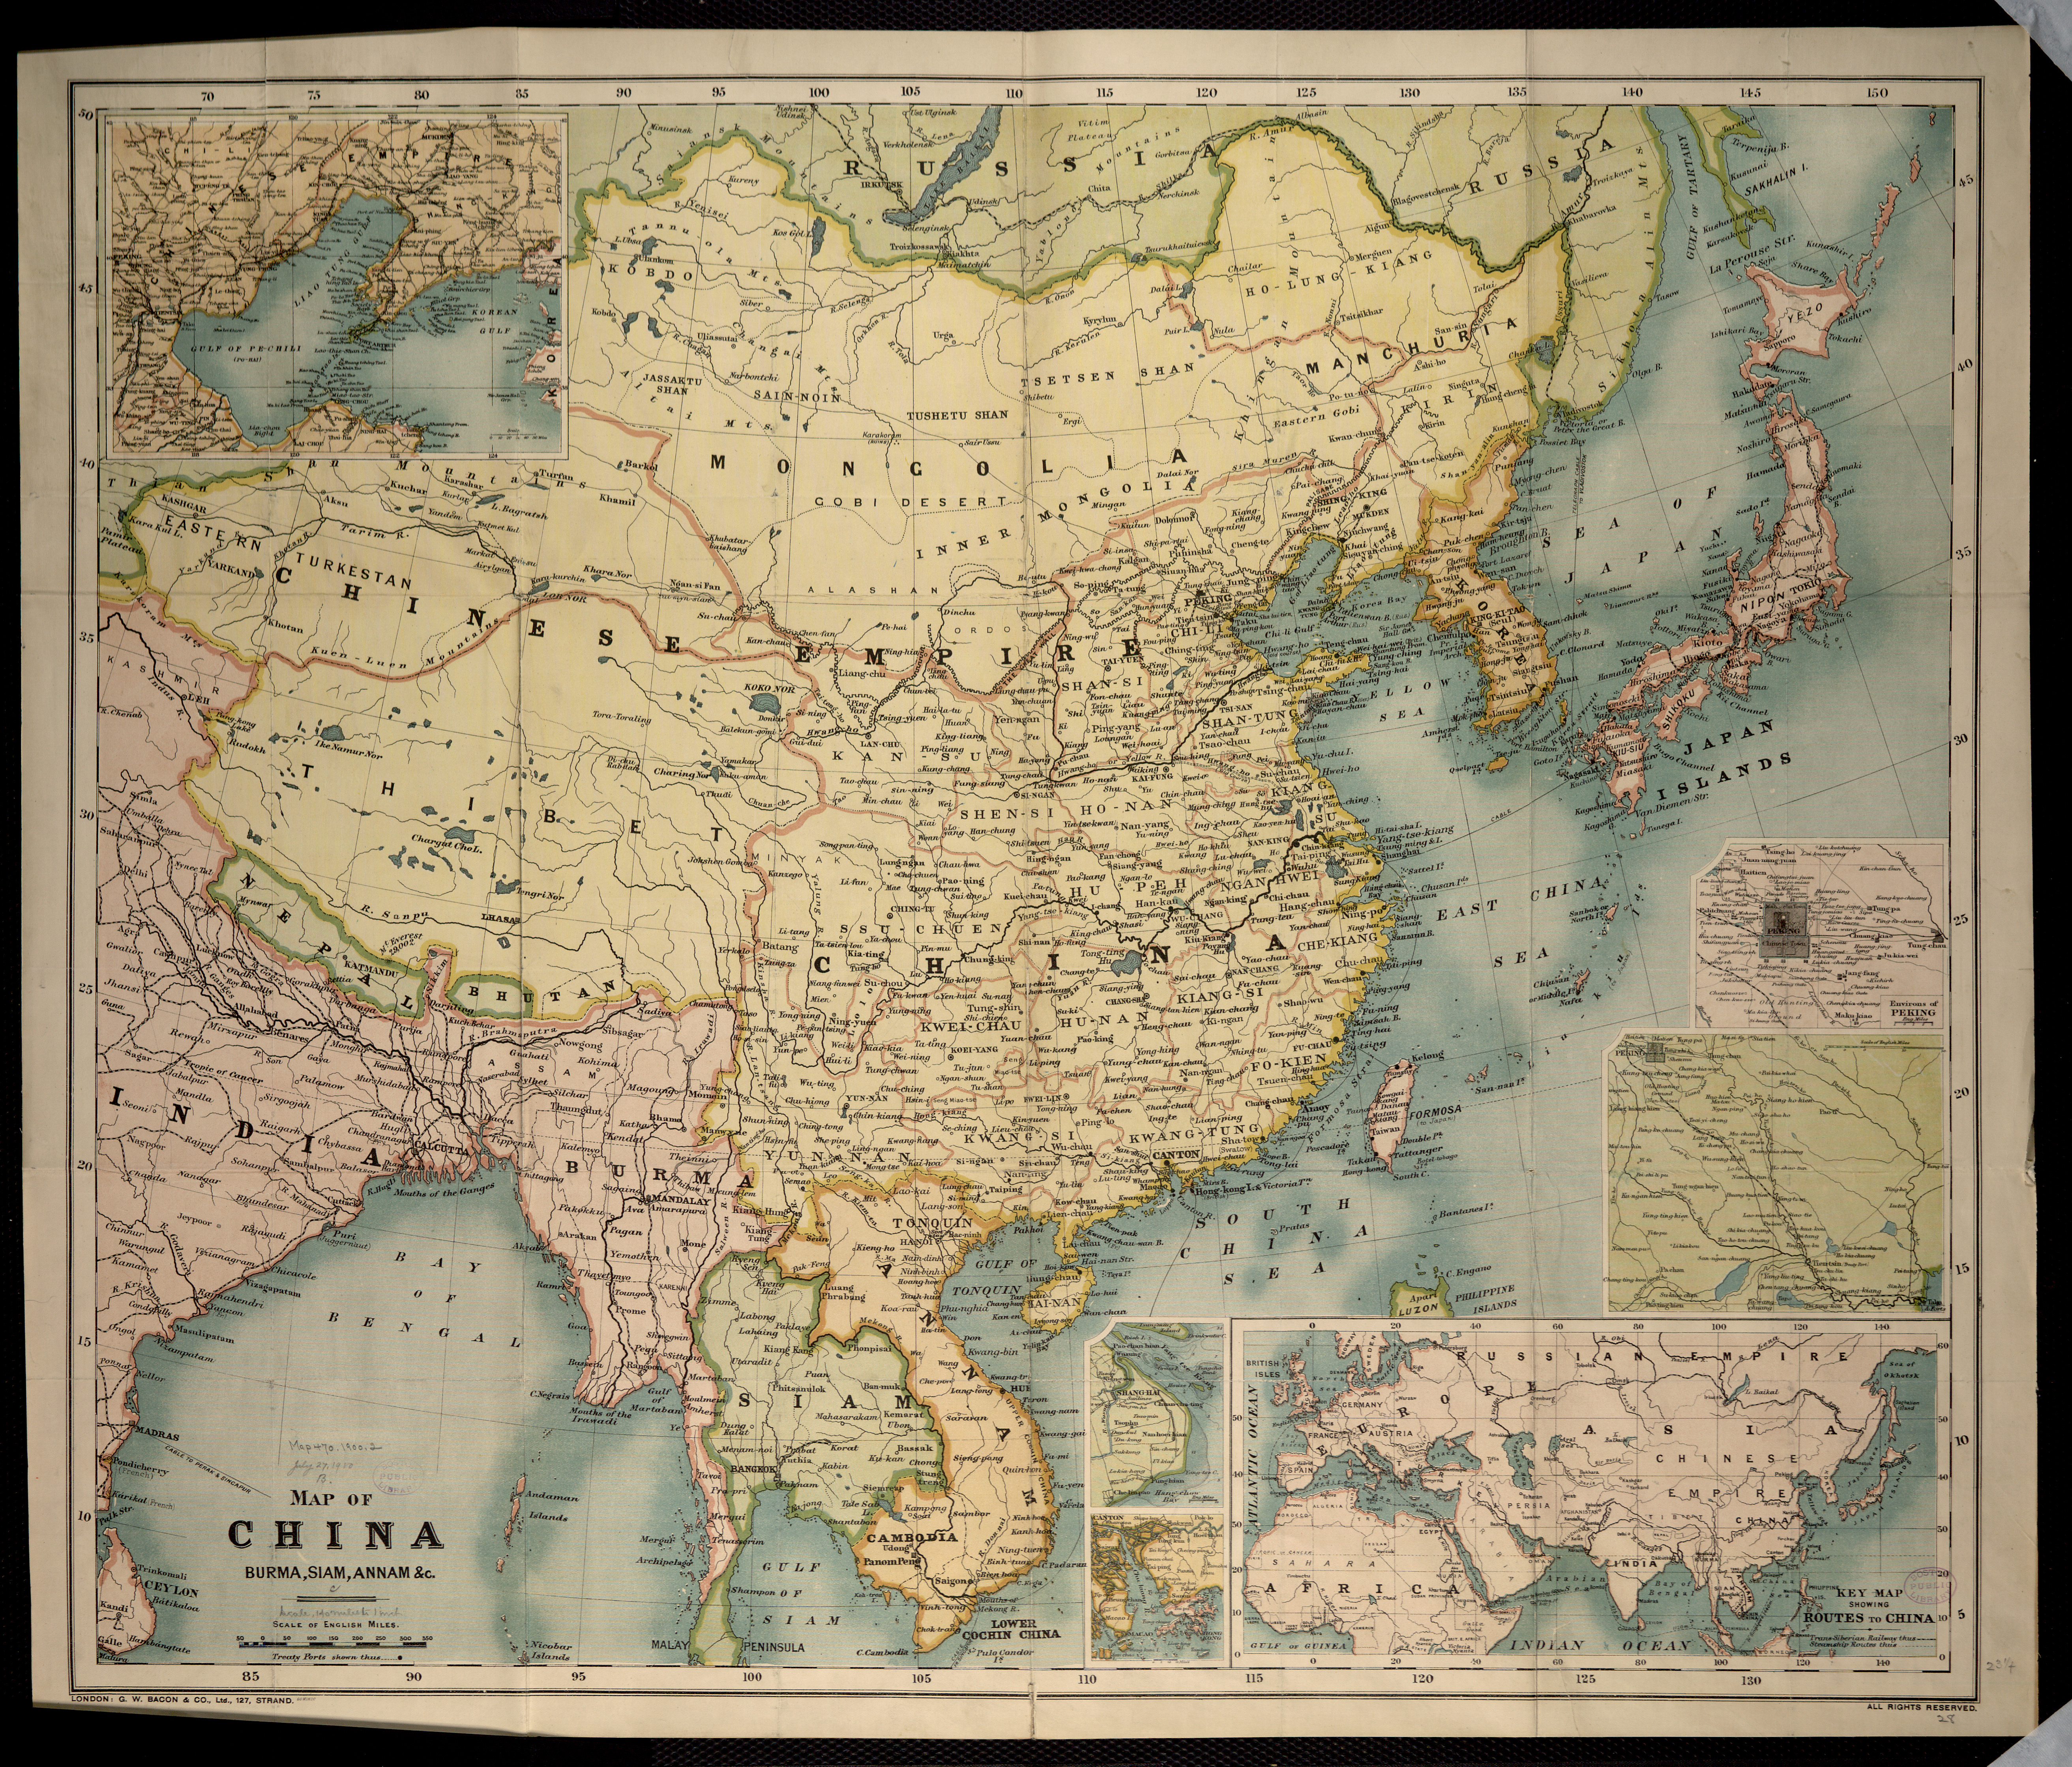 Filemap Of China Burma Siam Annam C 5555857345 Jpg